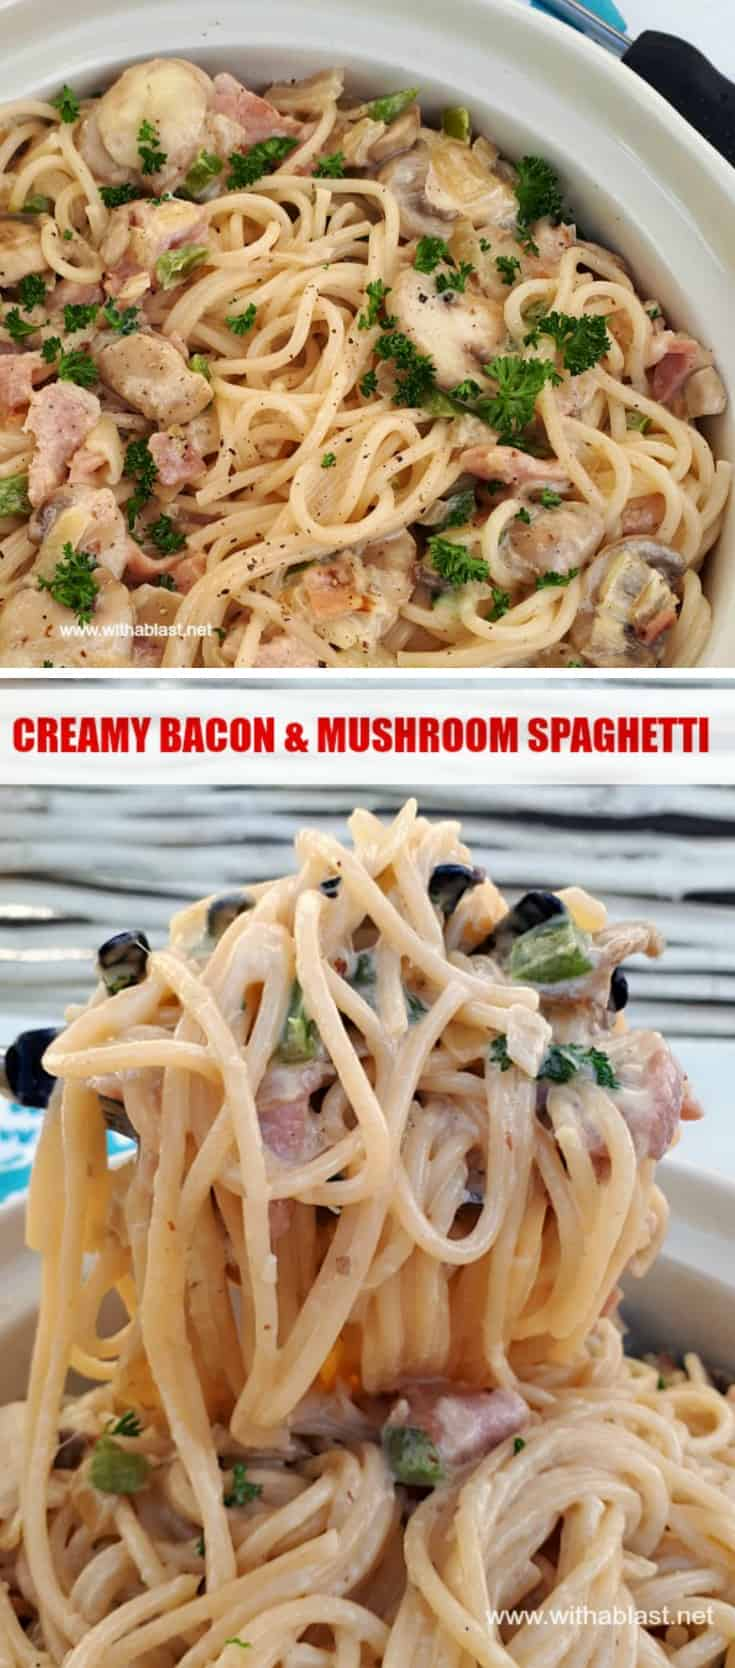 20 Minutes is all you need to get this Creamy Bacon and Mushroom Pasta on the table ! Recipe yield 8 adult sized servings [can easily be halved/doubled] #PastaRecipes #PastaDinner #BaconPasta #CreamyPastaDinner #ComfortFood